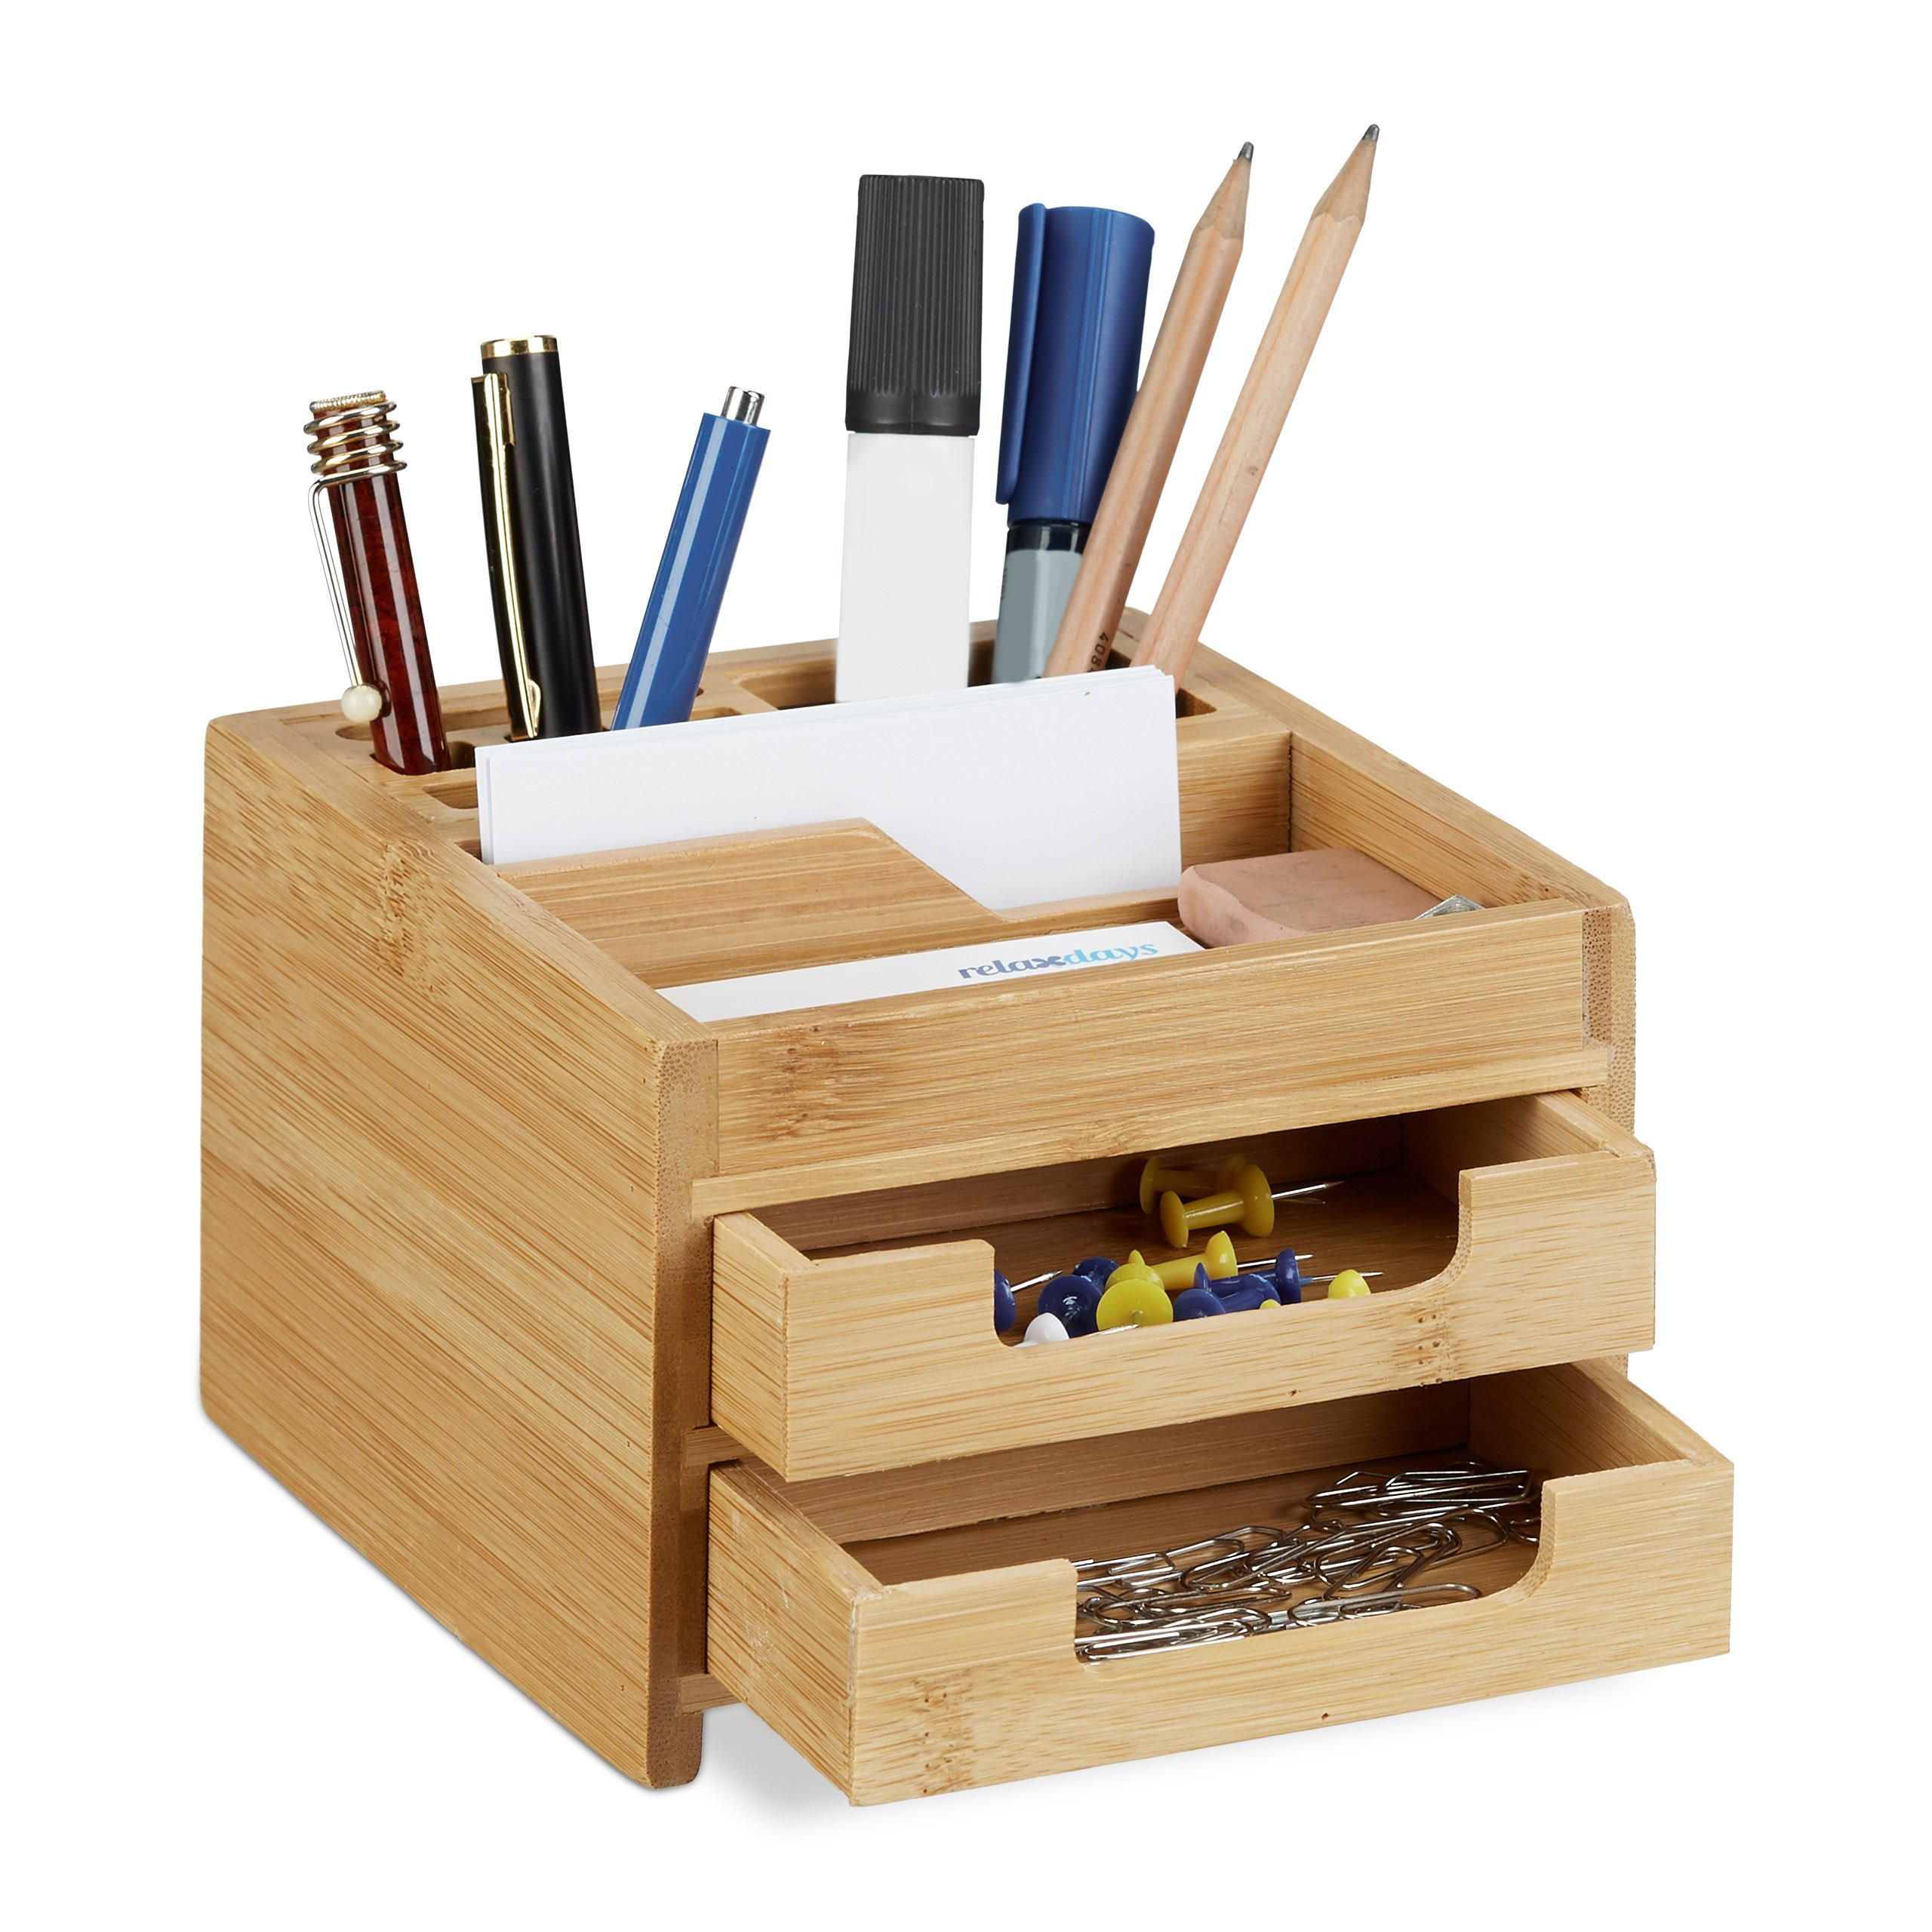 relaxdays schreibtisch organizer bambus stiftehalter holz schreibtischbox schu ebay. Black Bedroom Furniture Sets. Home Design Ideas